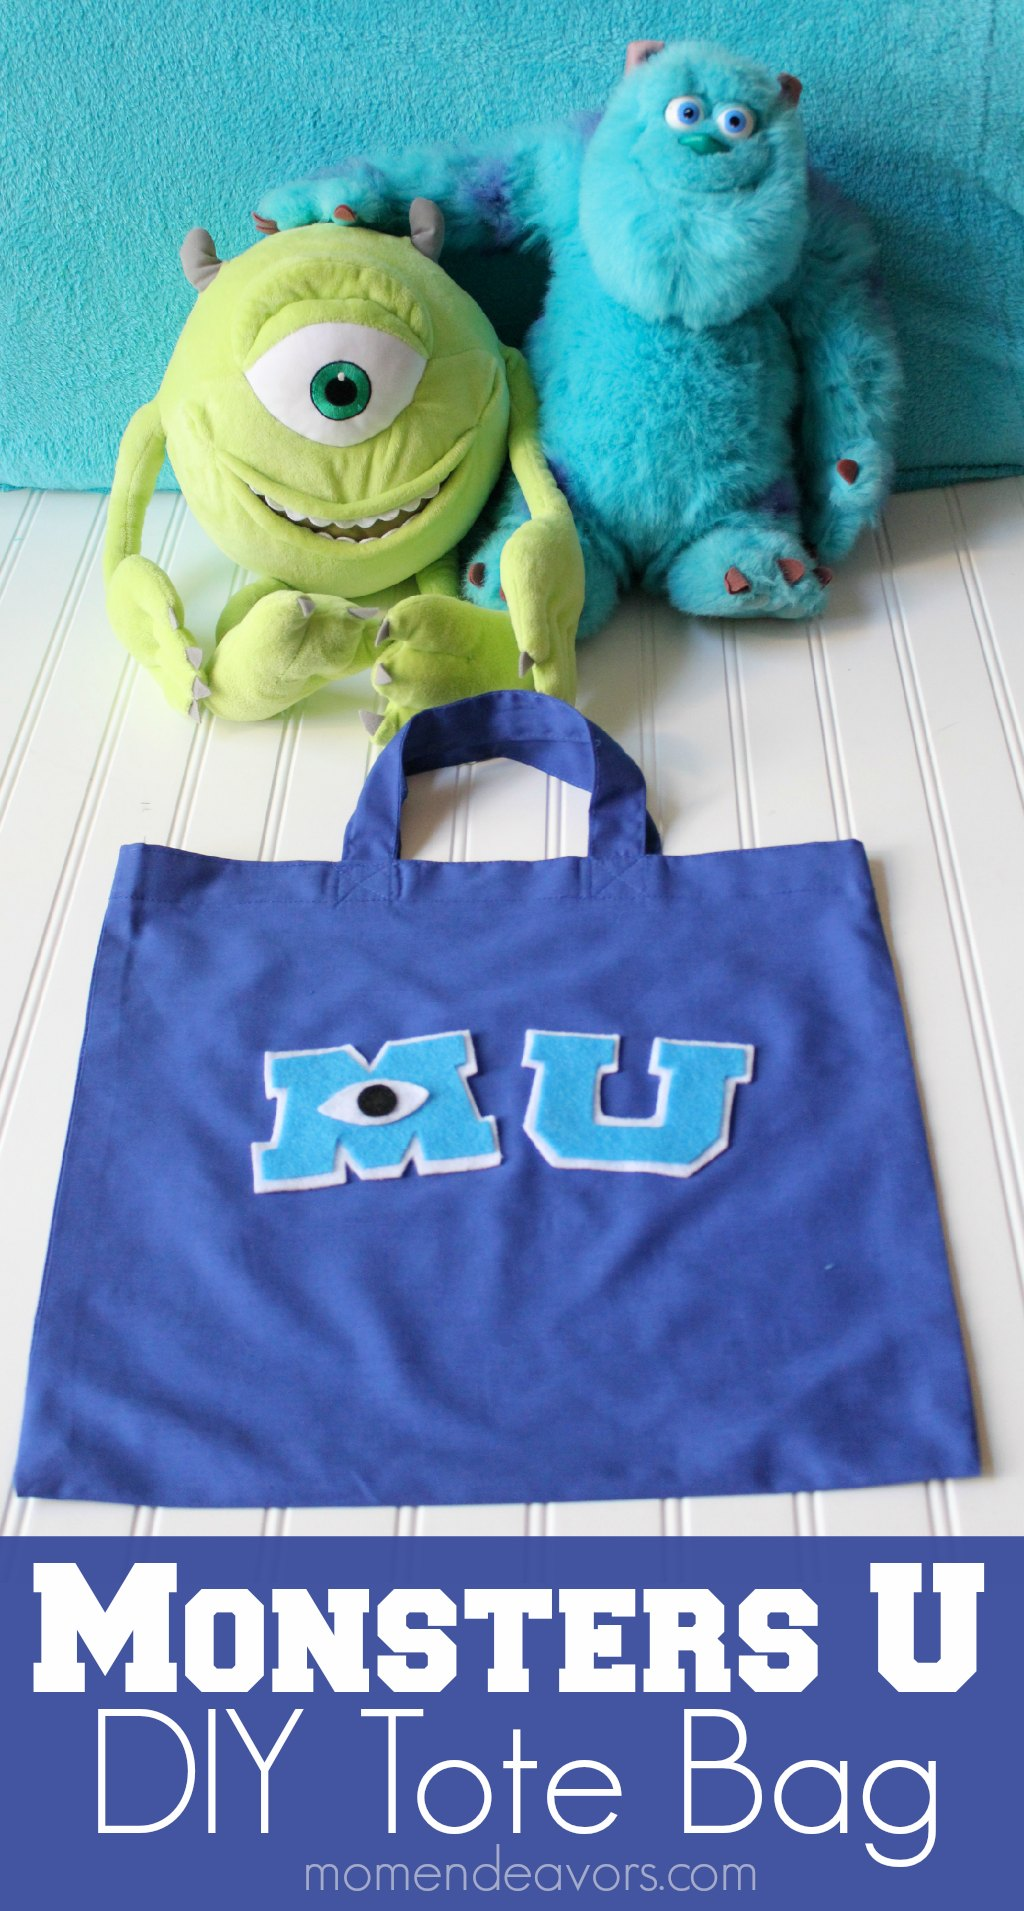 Monsters University DIY Tote Bag #MonstersU